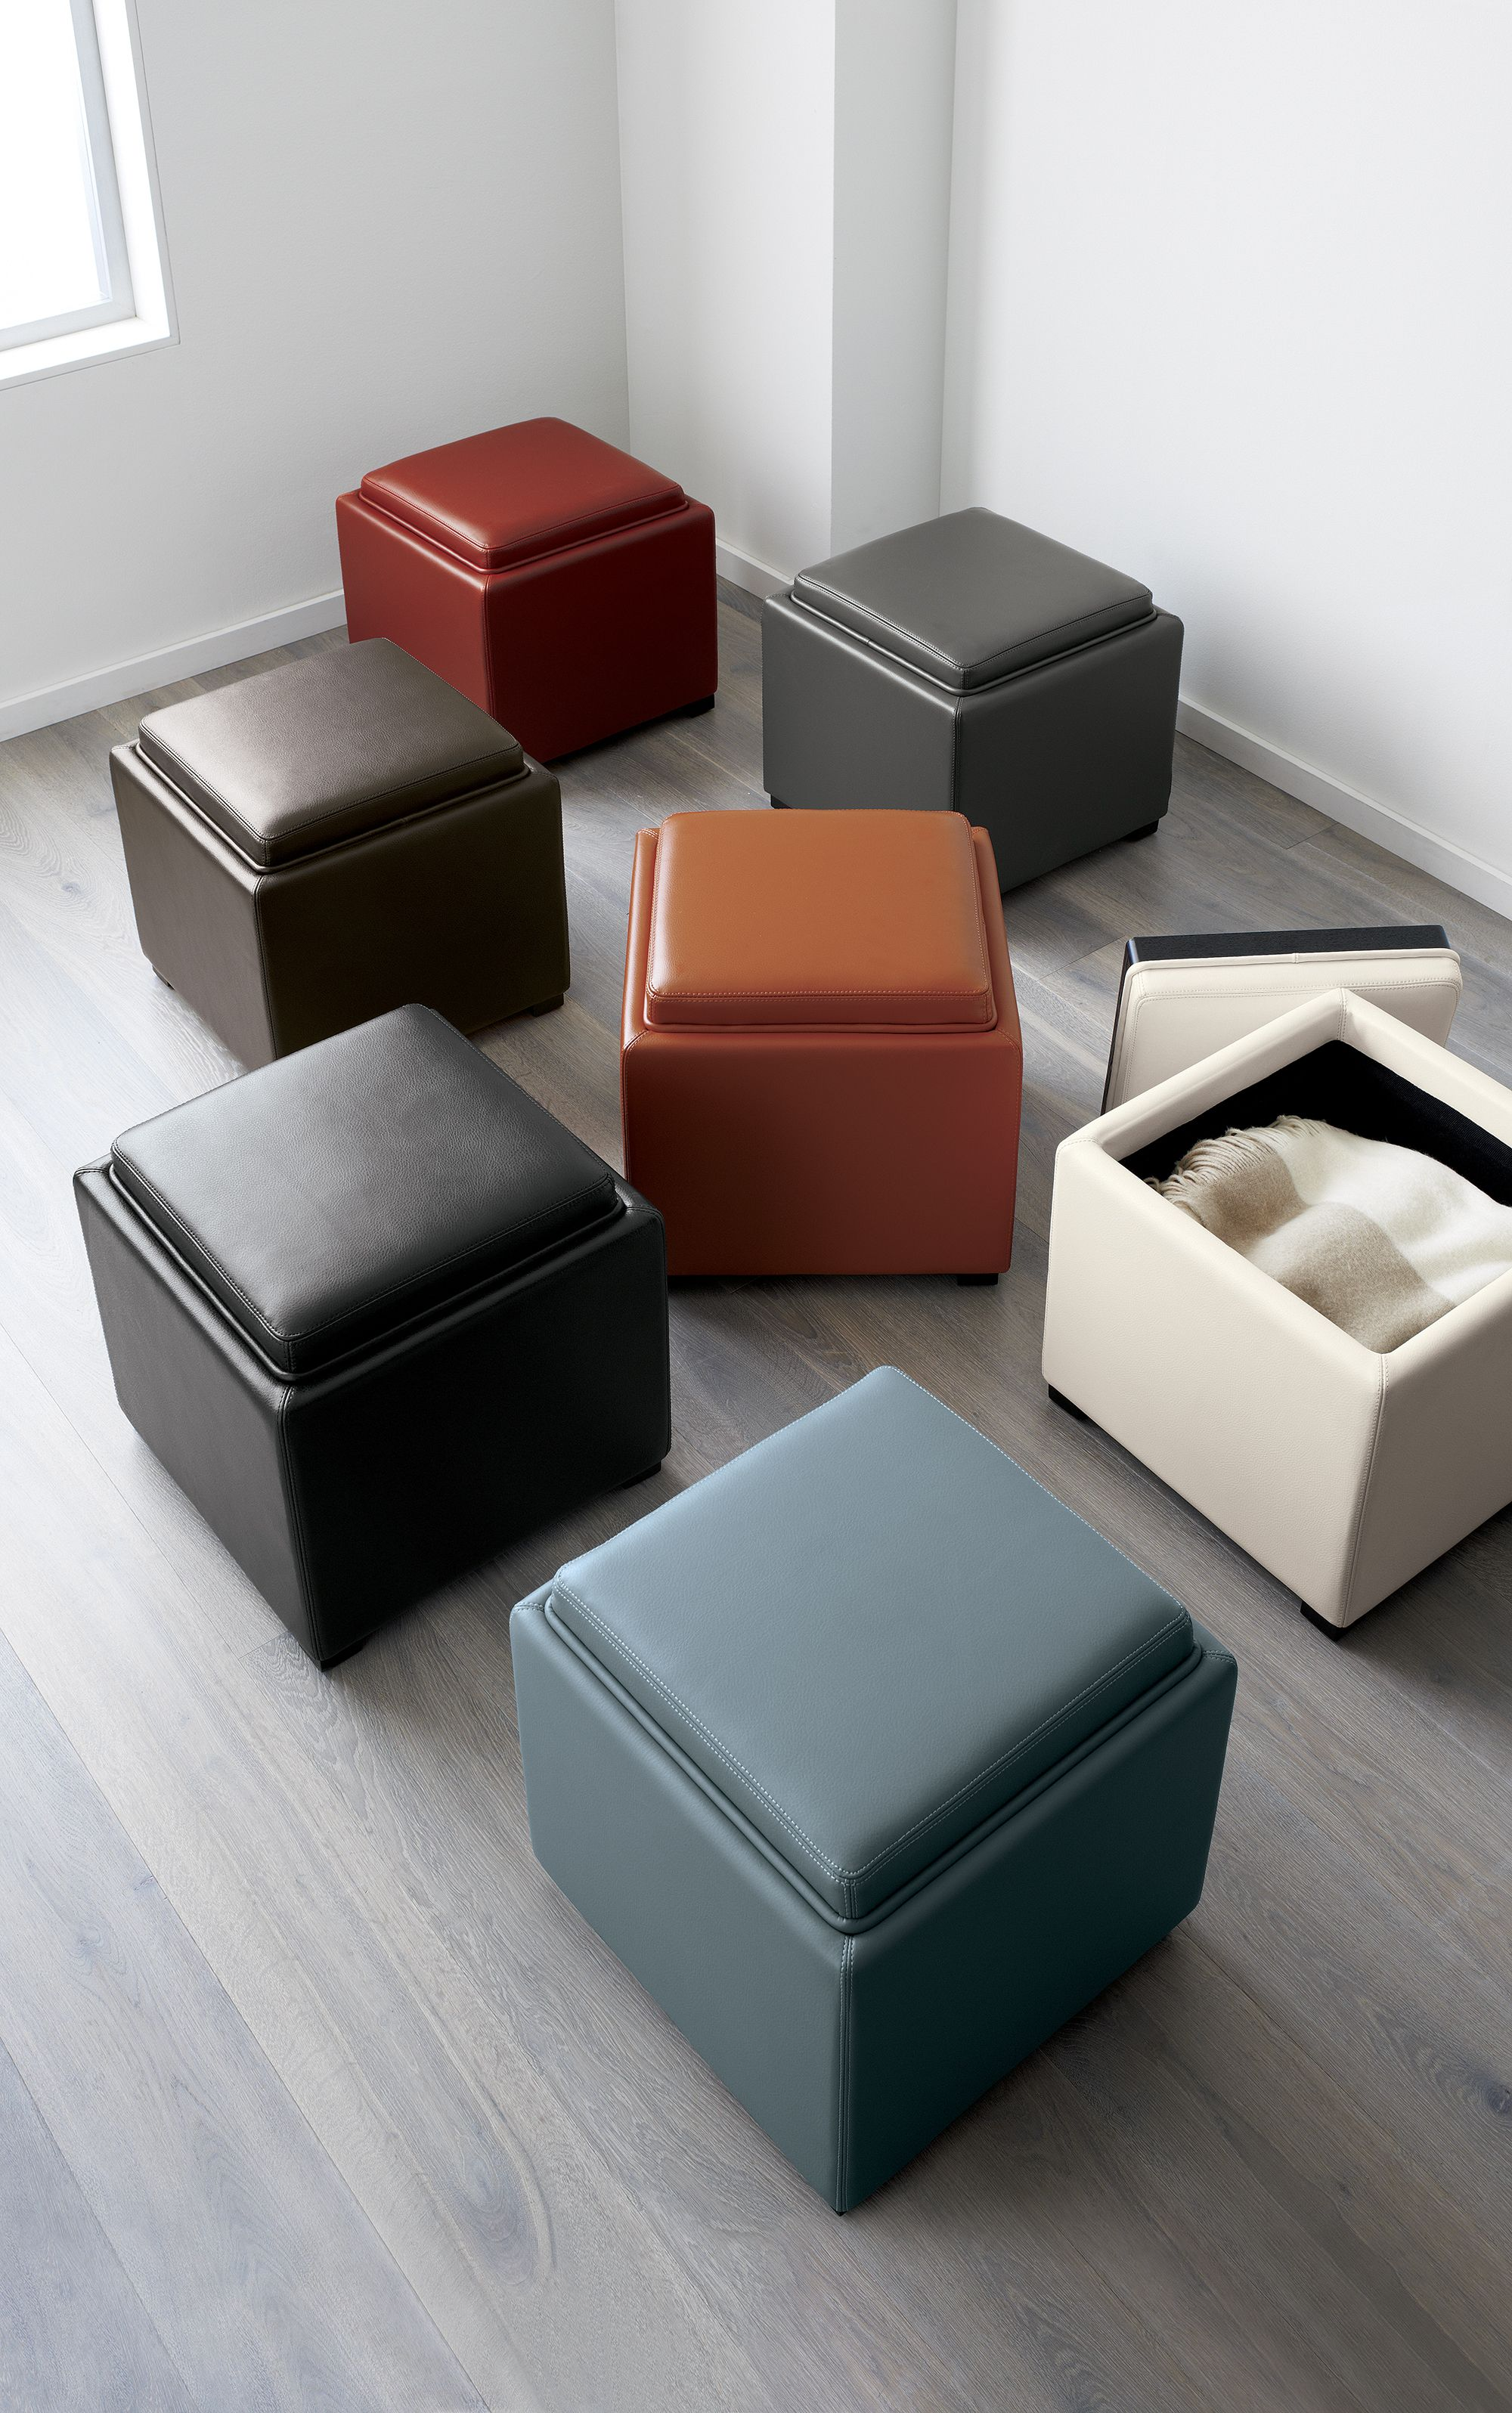 Stow is a concealed storage cube in soft, pebbled bonded leather that does stylish double-duty